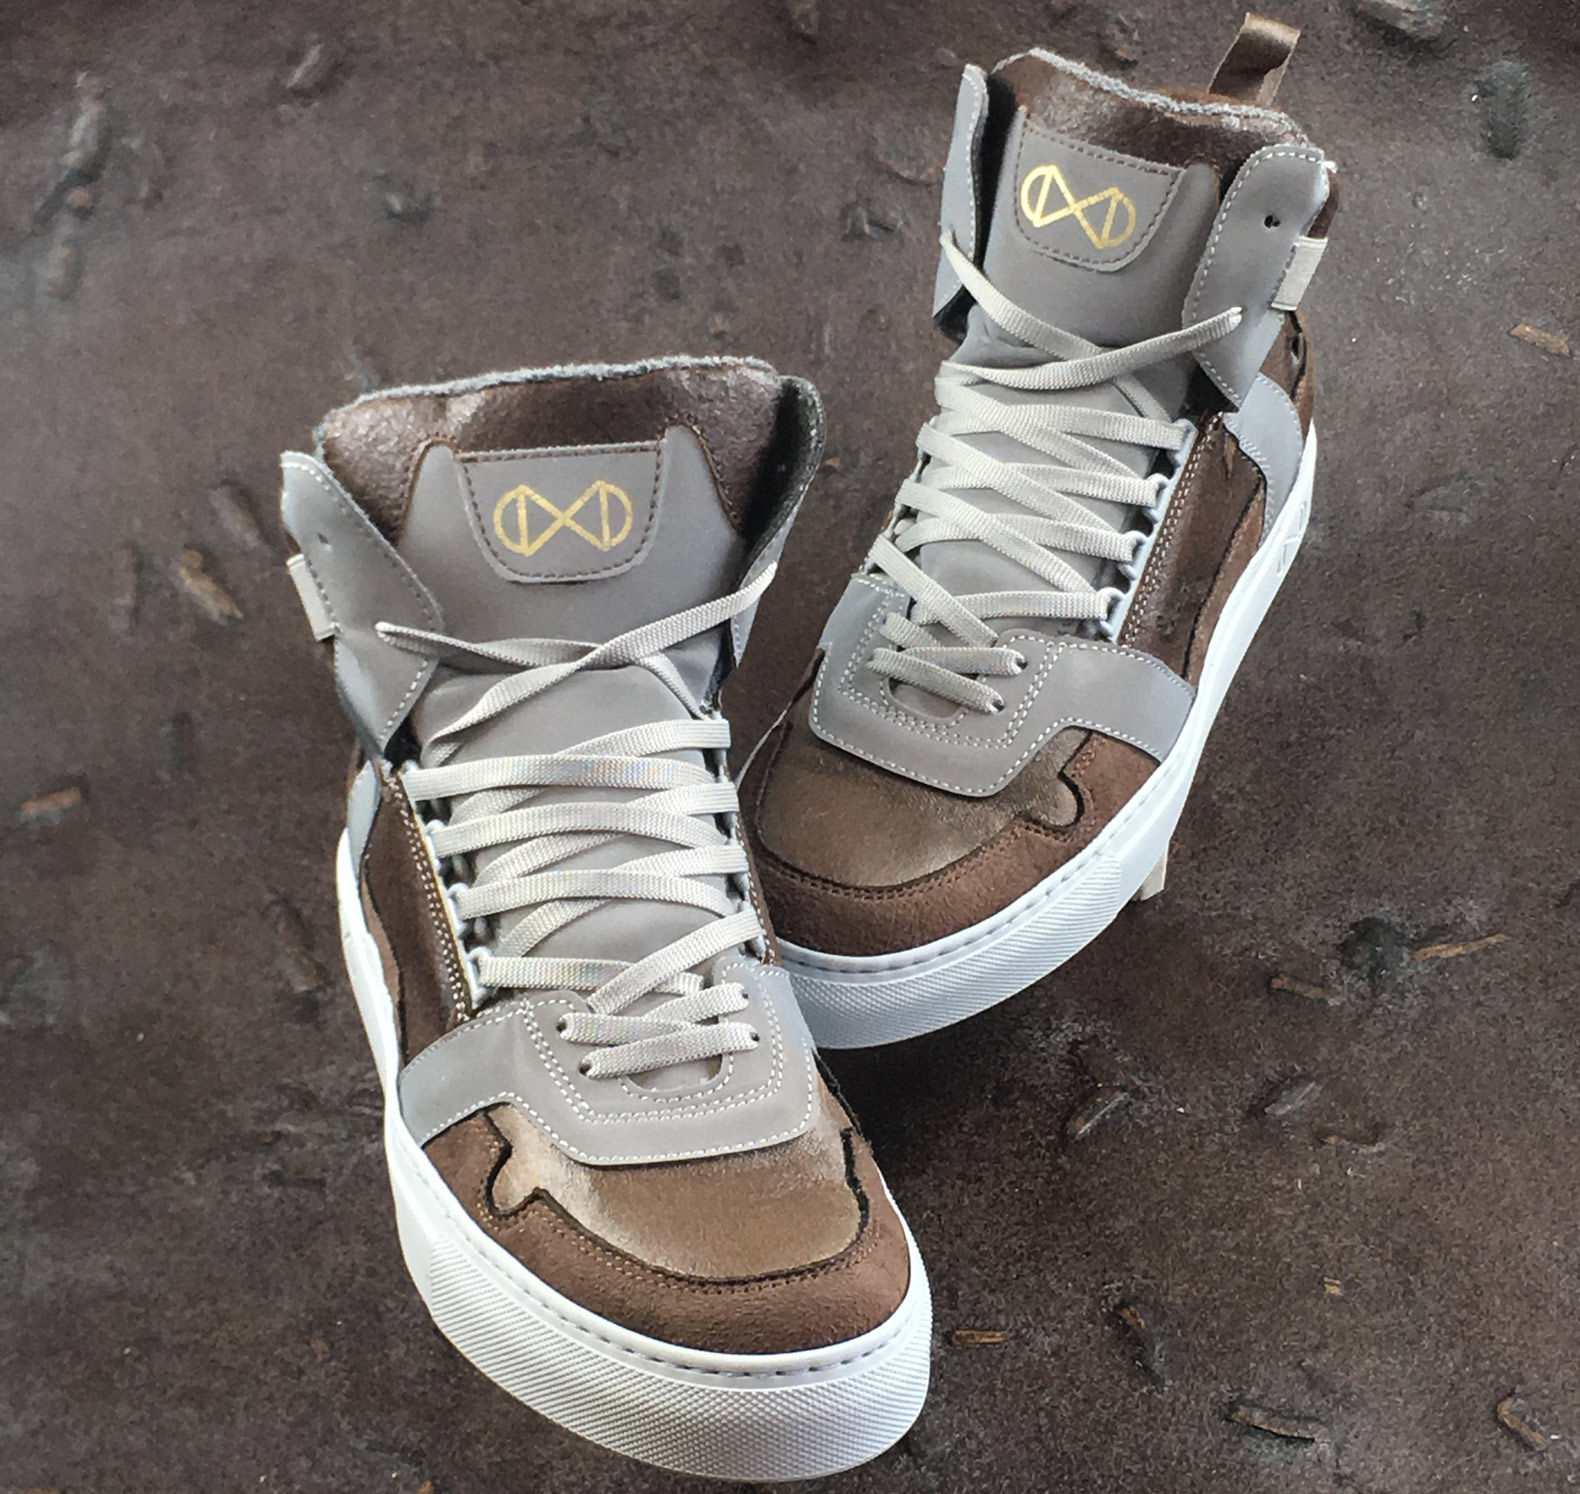 nat-2 creates a completely vegan sneaker made from coffee